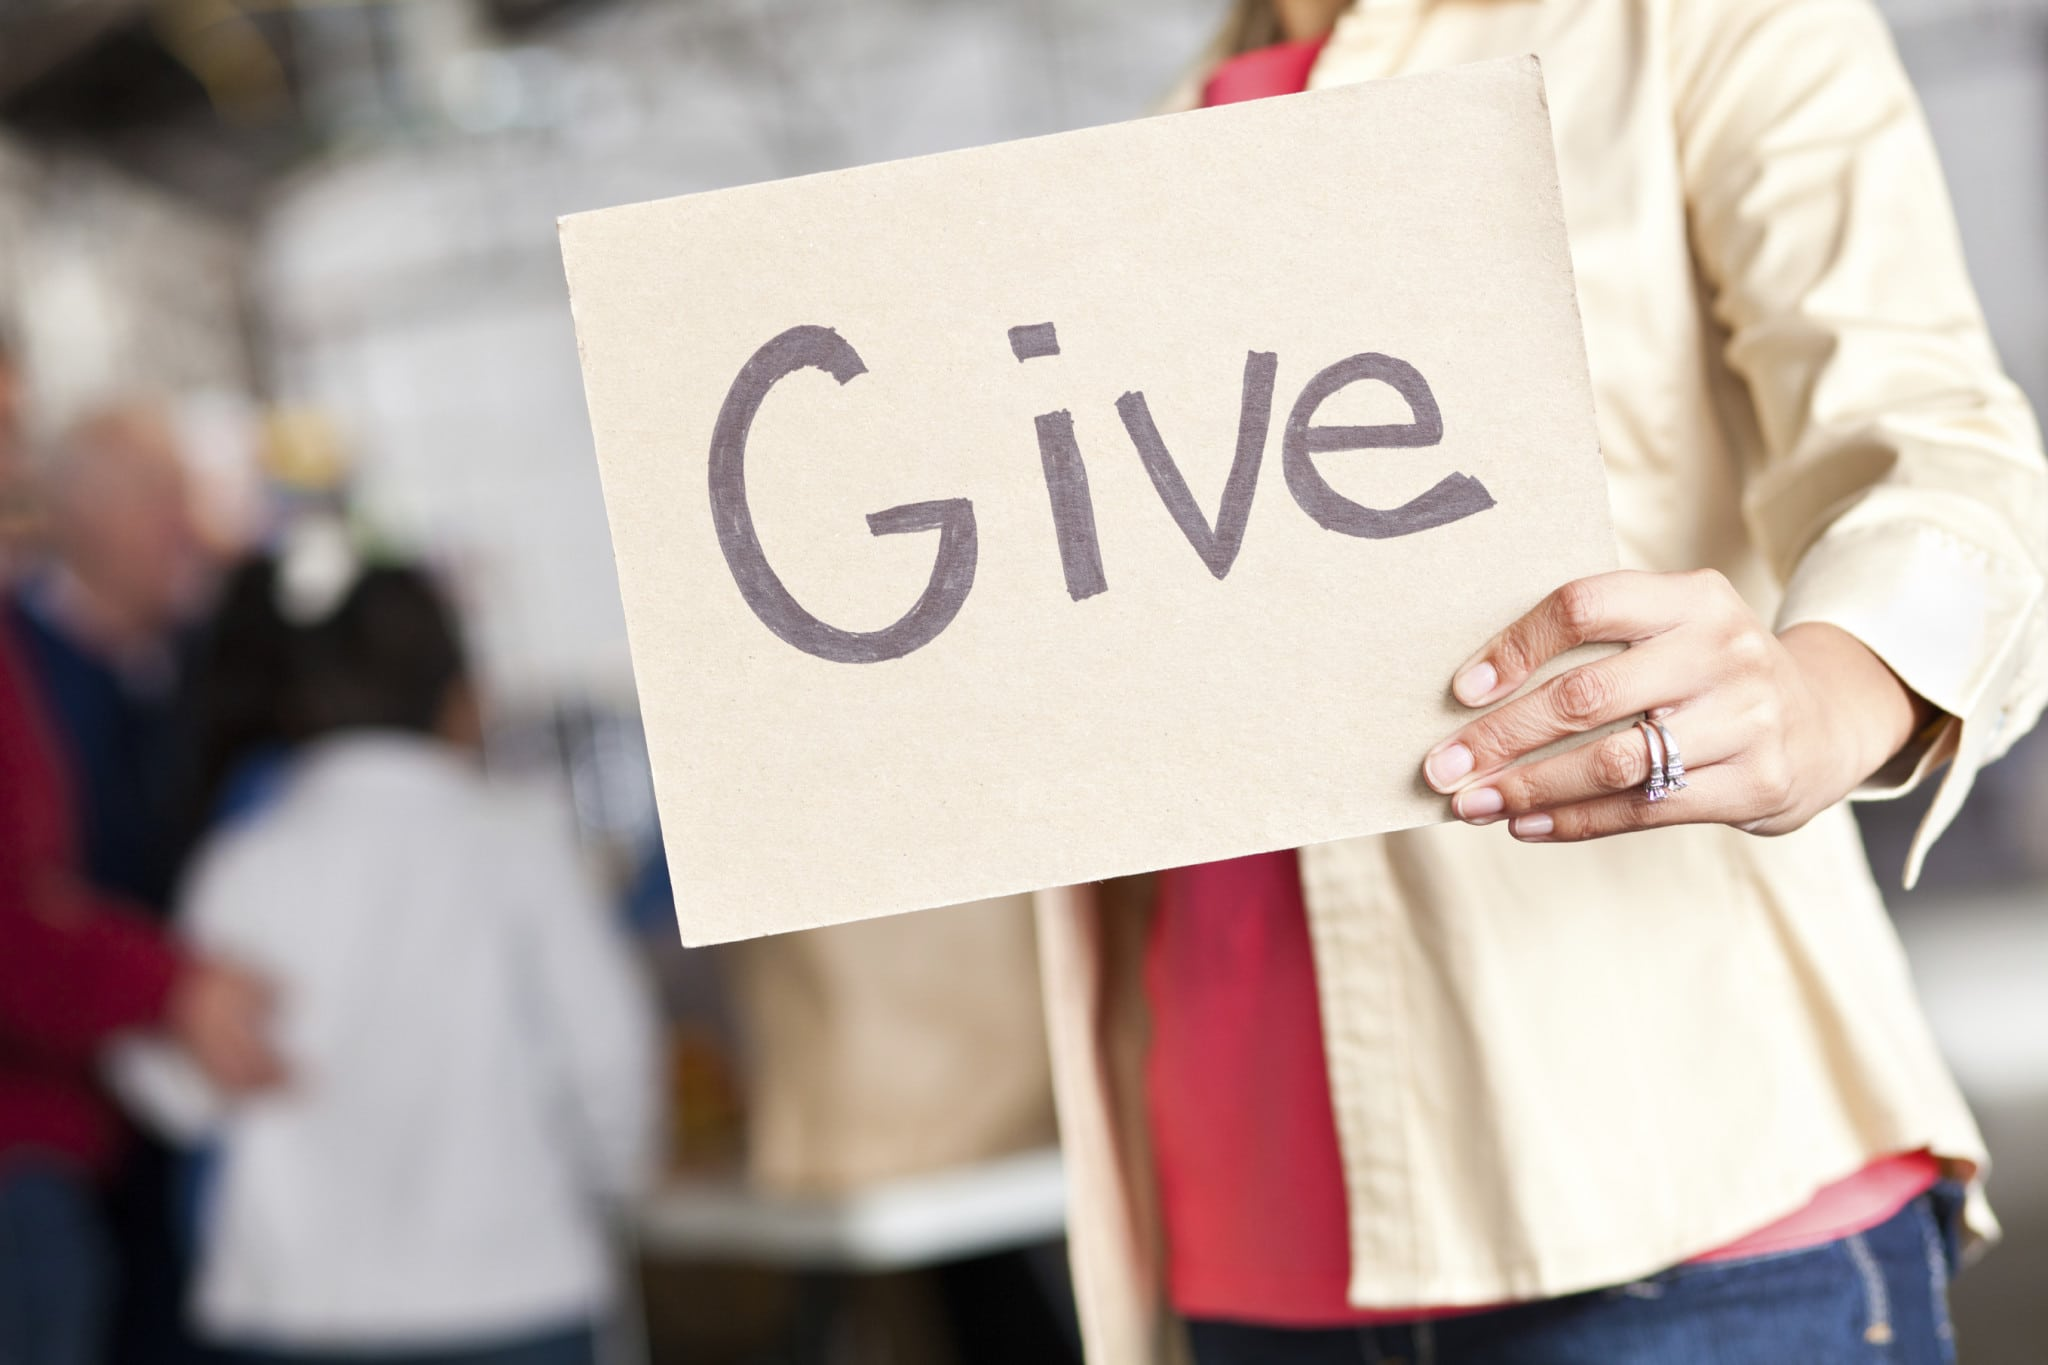 Charity_GiveSign